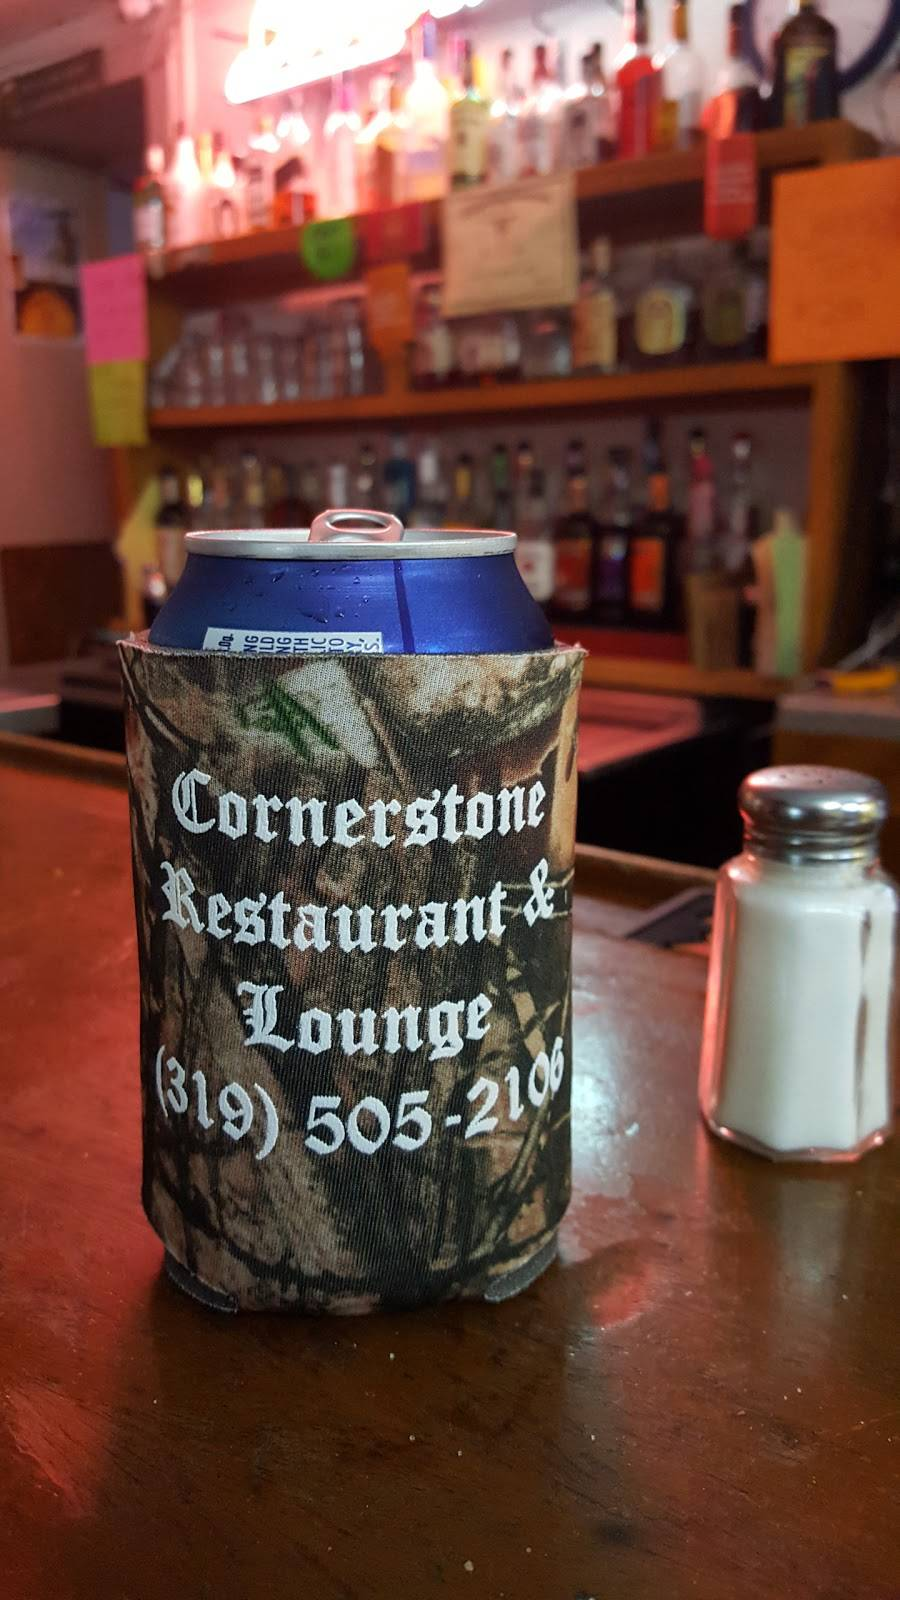 Cornerstone Restaurant and Lounge   restaurant   1406 5th St, Gilbertville, IA 50634, USA   3195052106 OR +1 319-505-2106